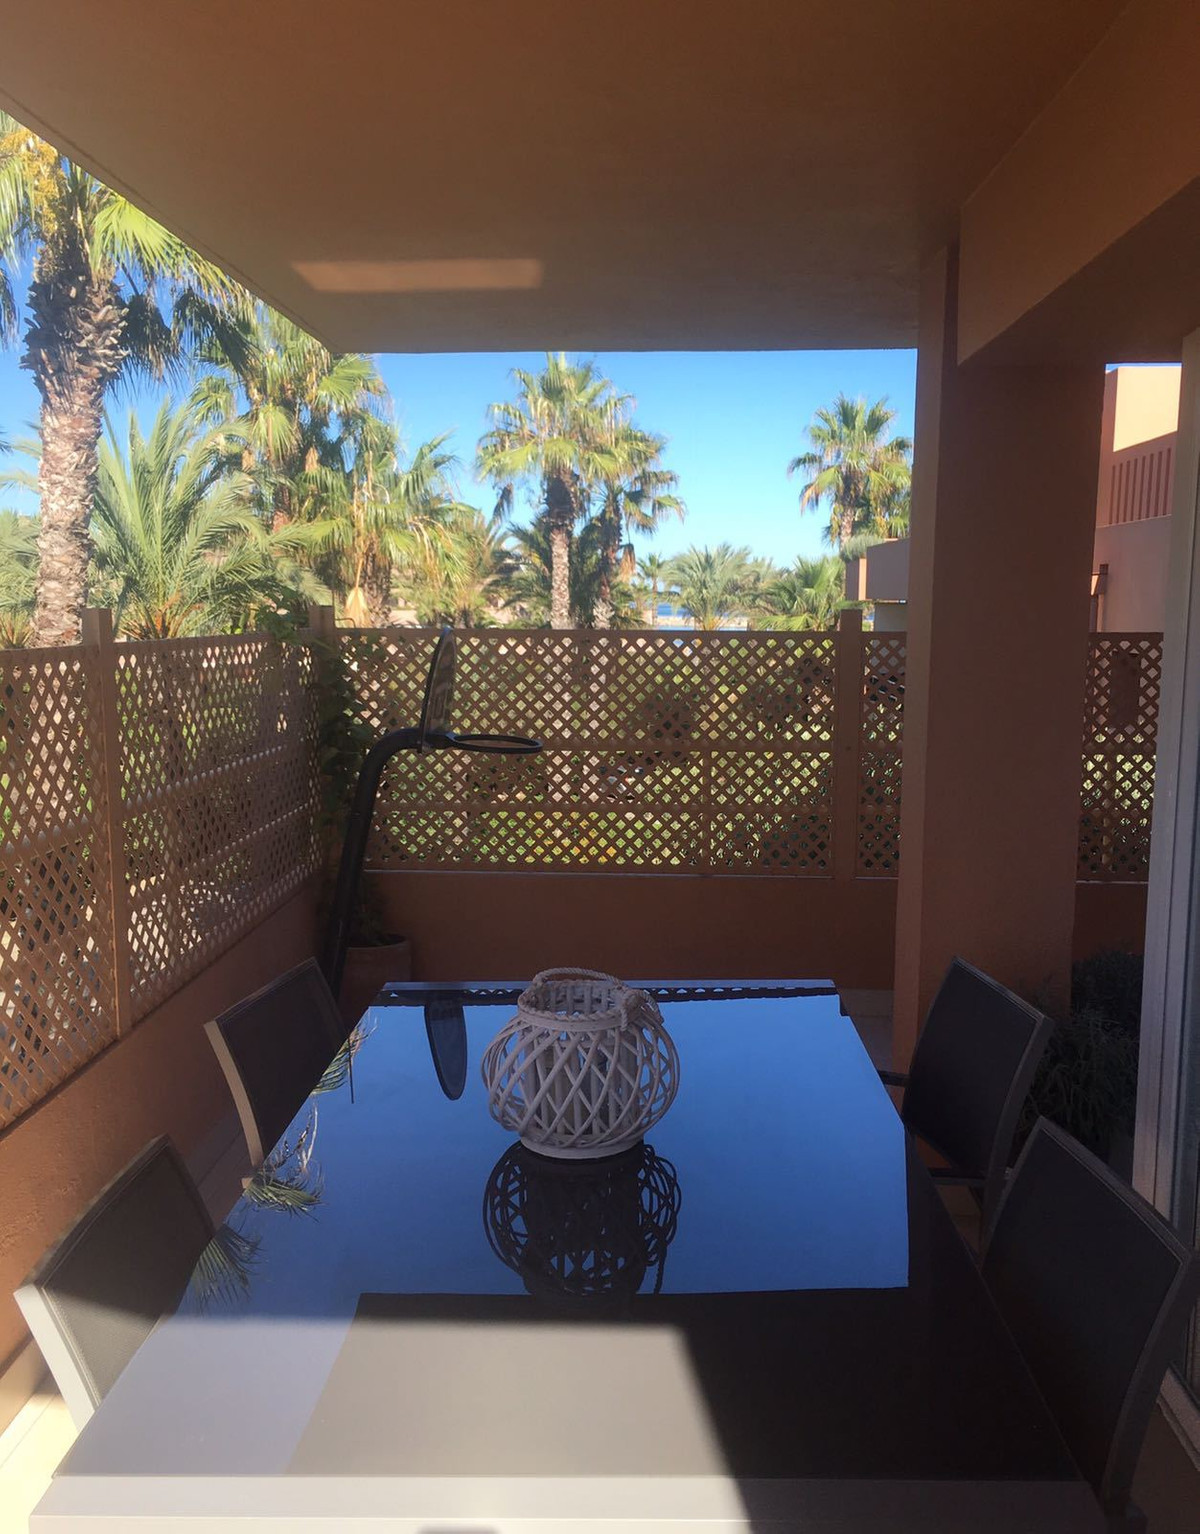 Magnificent sunny apartment with great location near the beach, close to the Octagon Club, tennis an,Spain